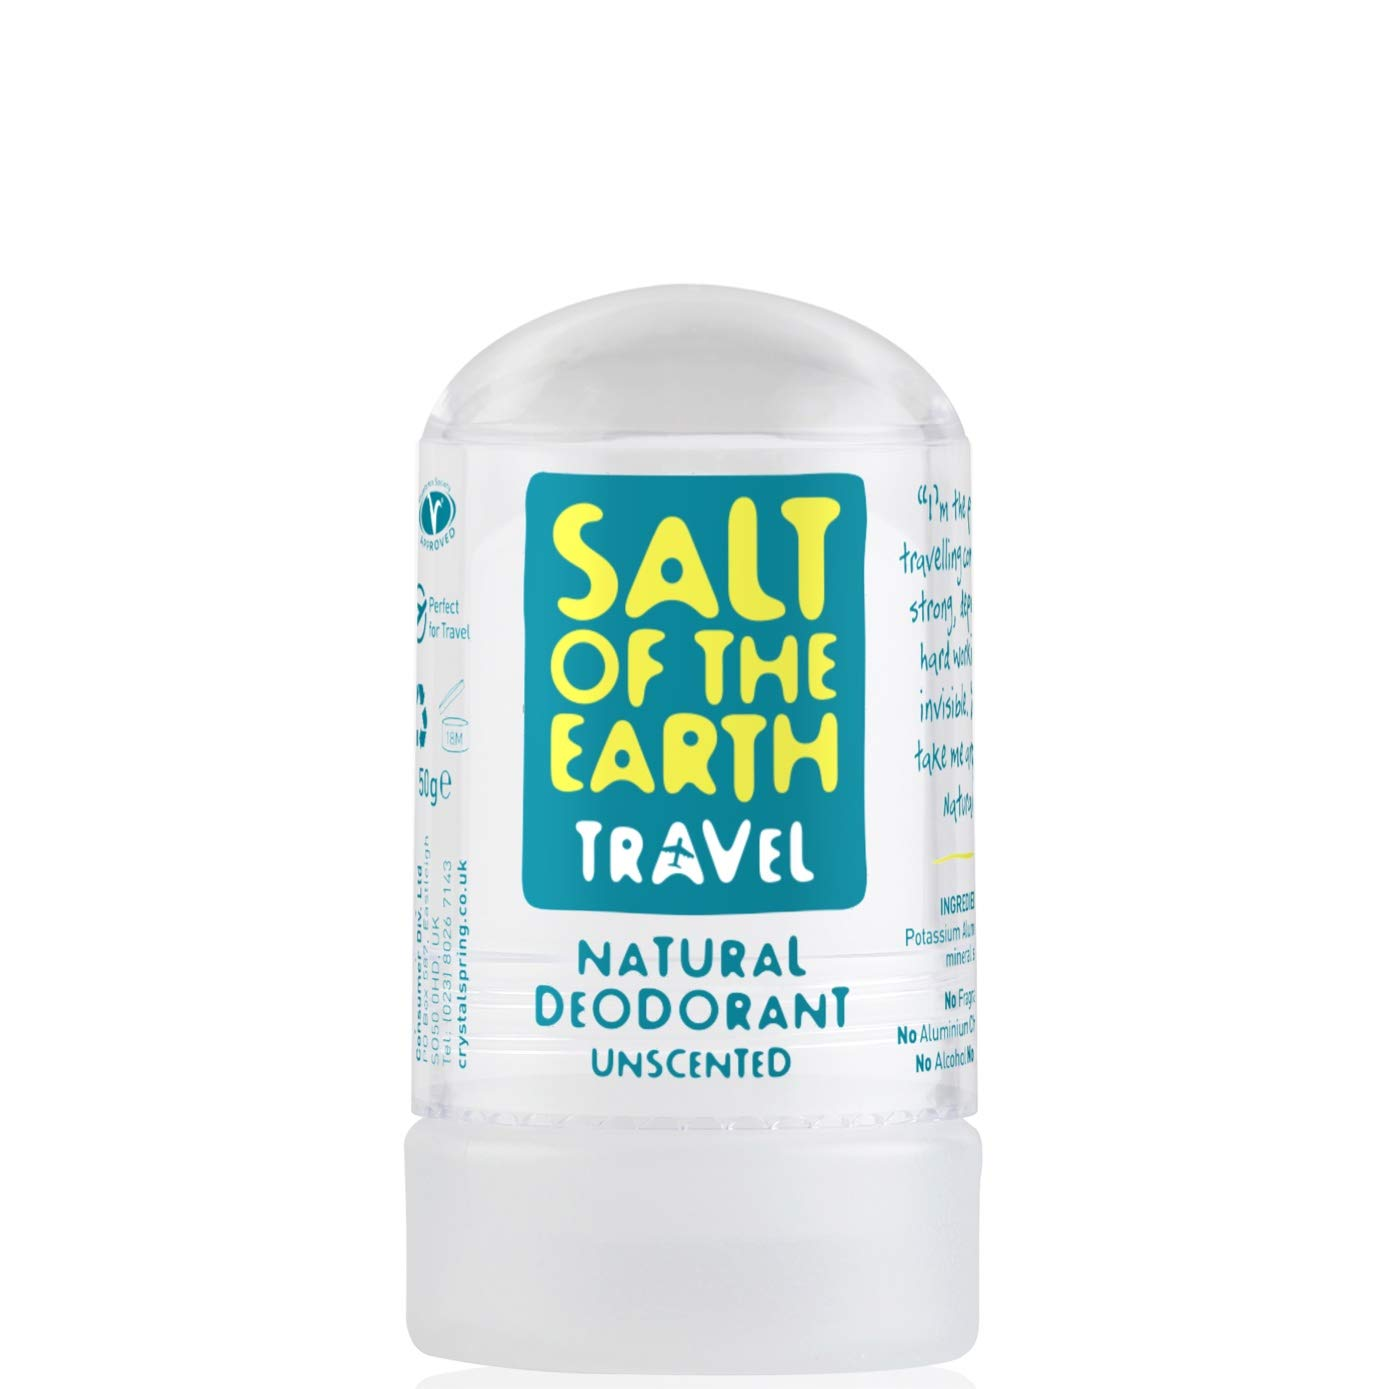 Salt of the Earth Unscented Natural Crystal Travel Deodorant 50g